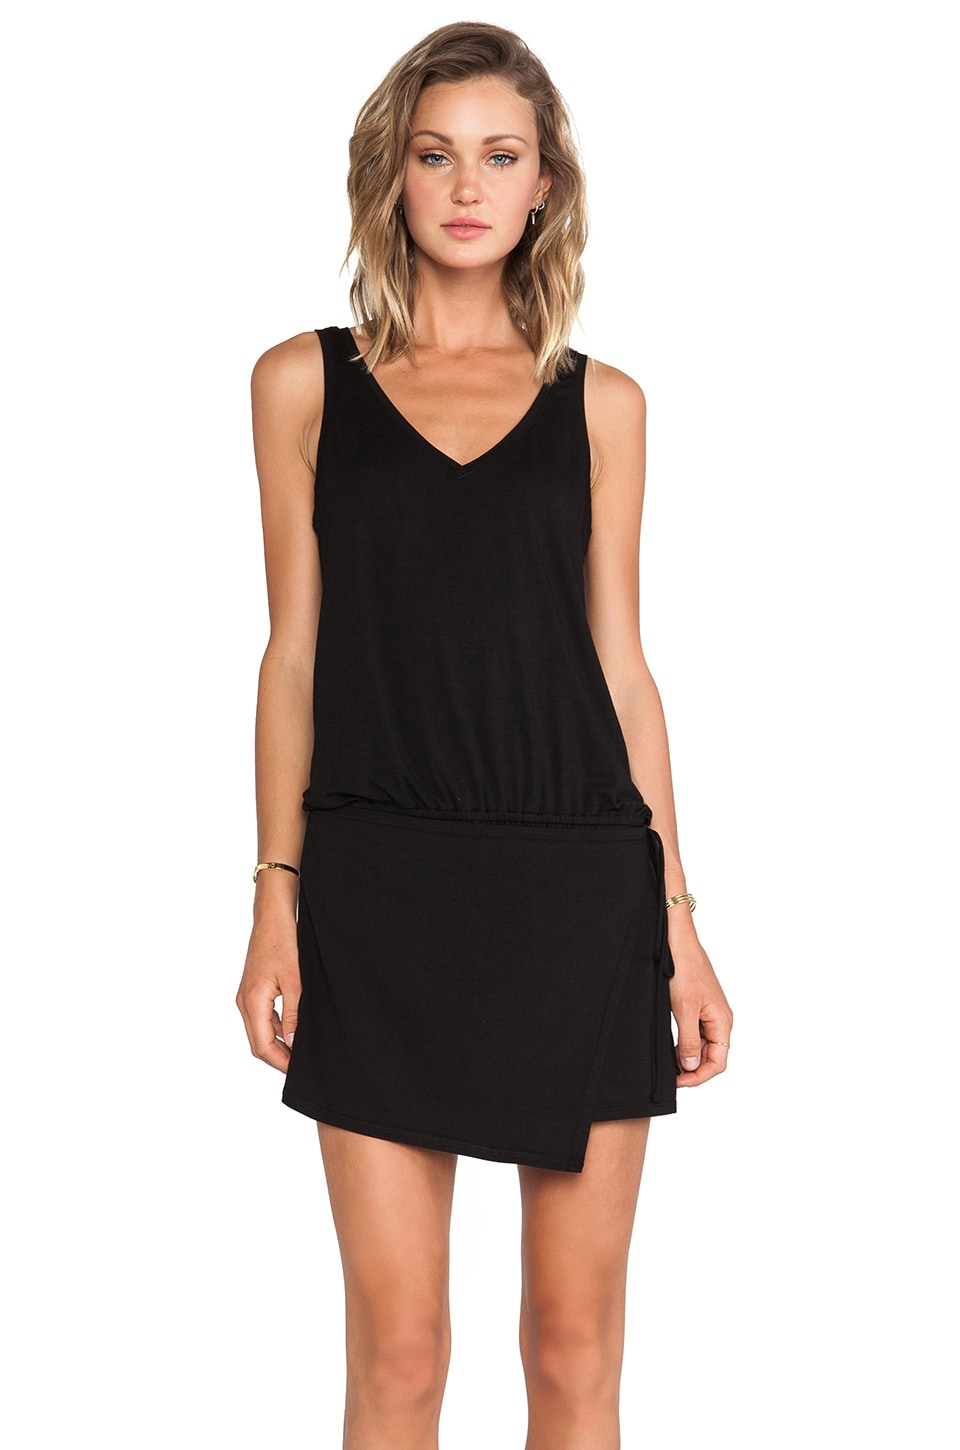 Feel the Piece Kalahari Skort Romper in Black